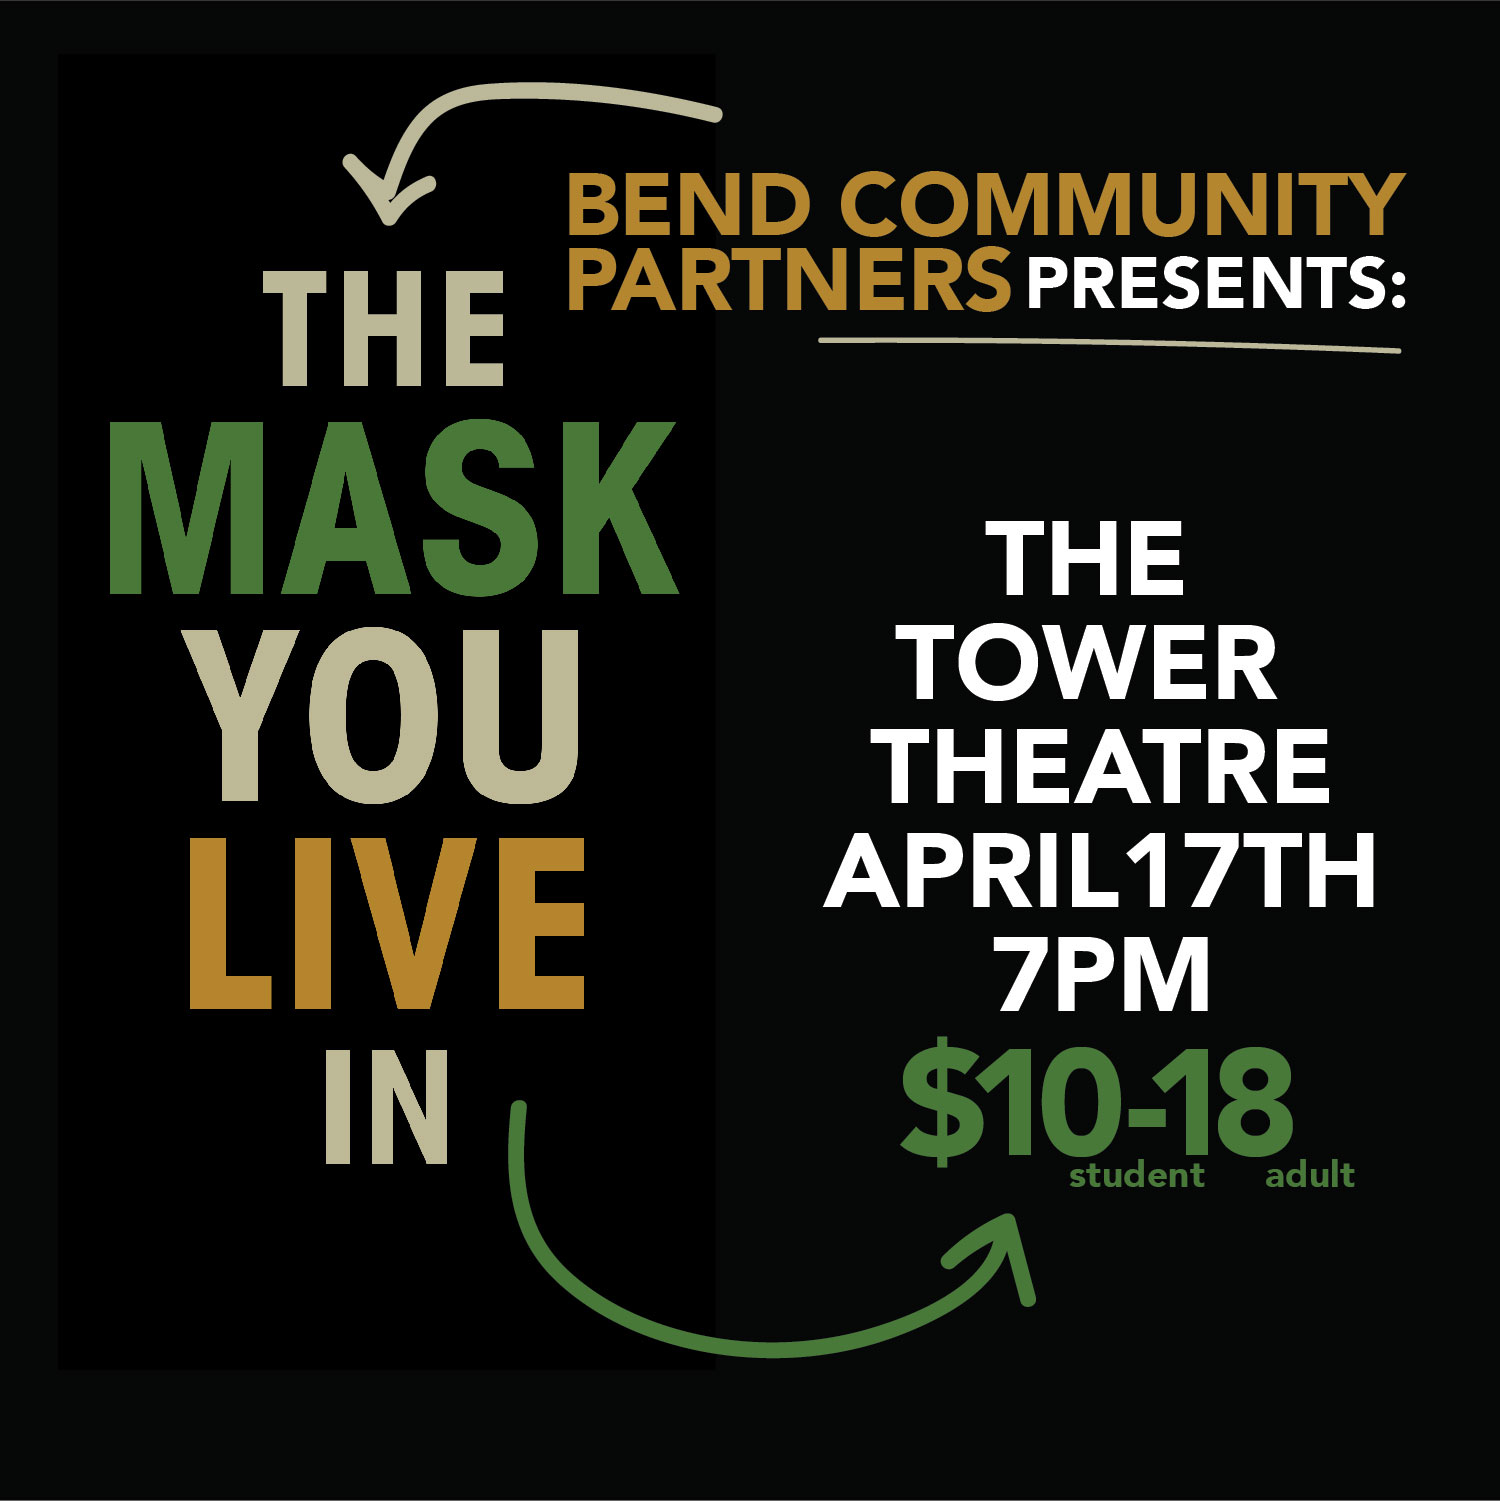 BEND COMMUNITY PARTNERS PRESENTS: THE MASK YOU LIVE IN @ Tower Theatre